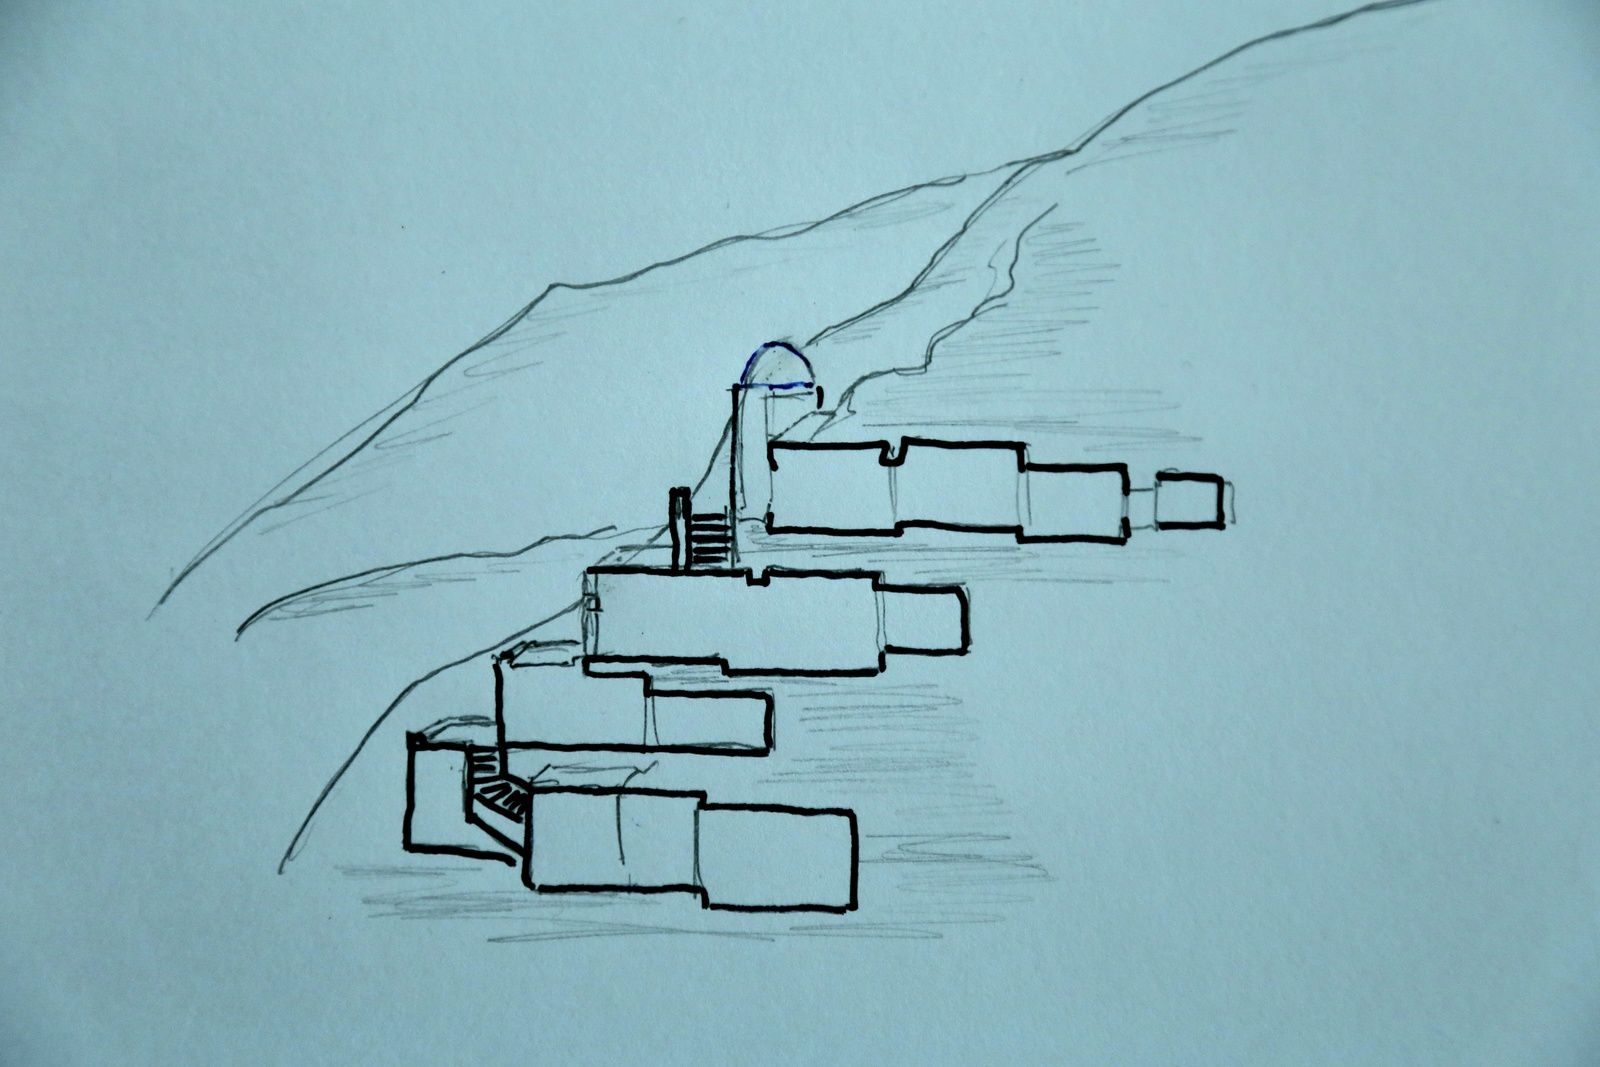 Santorini - the Yposkafas - cut in a wall of the caldera characterizing the troglodyte dwellings dug in volcanic materials - drawing © Bernard Duyck 09.2019